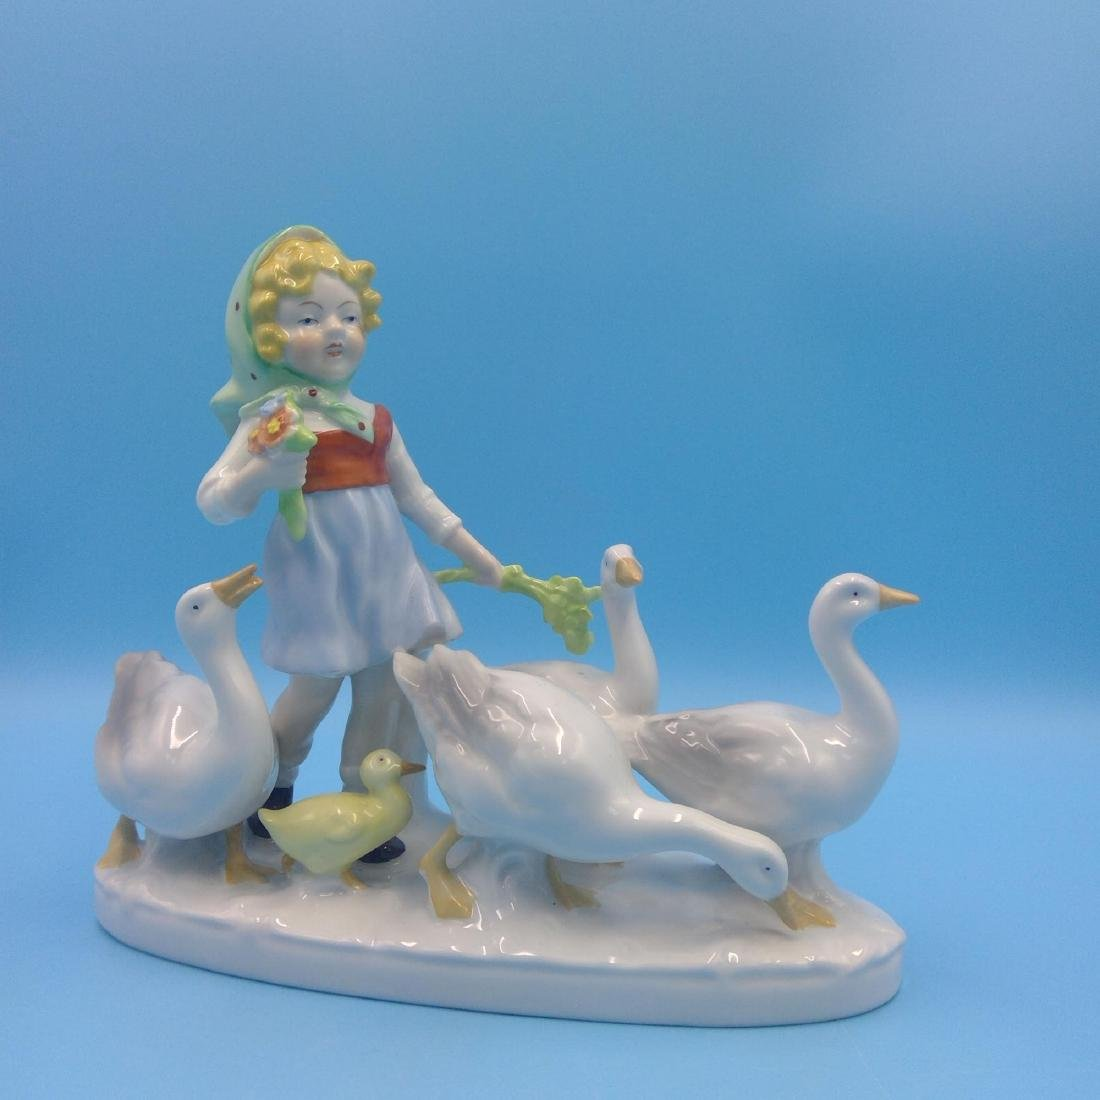 GROUP OF 7 GERMAN PORCELAIN FIGURINES - 6